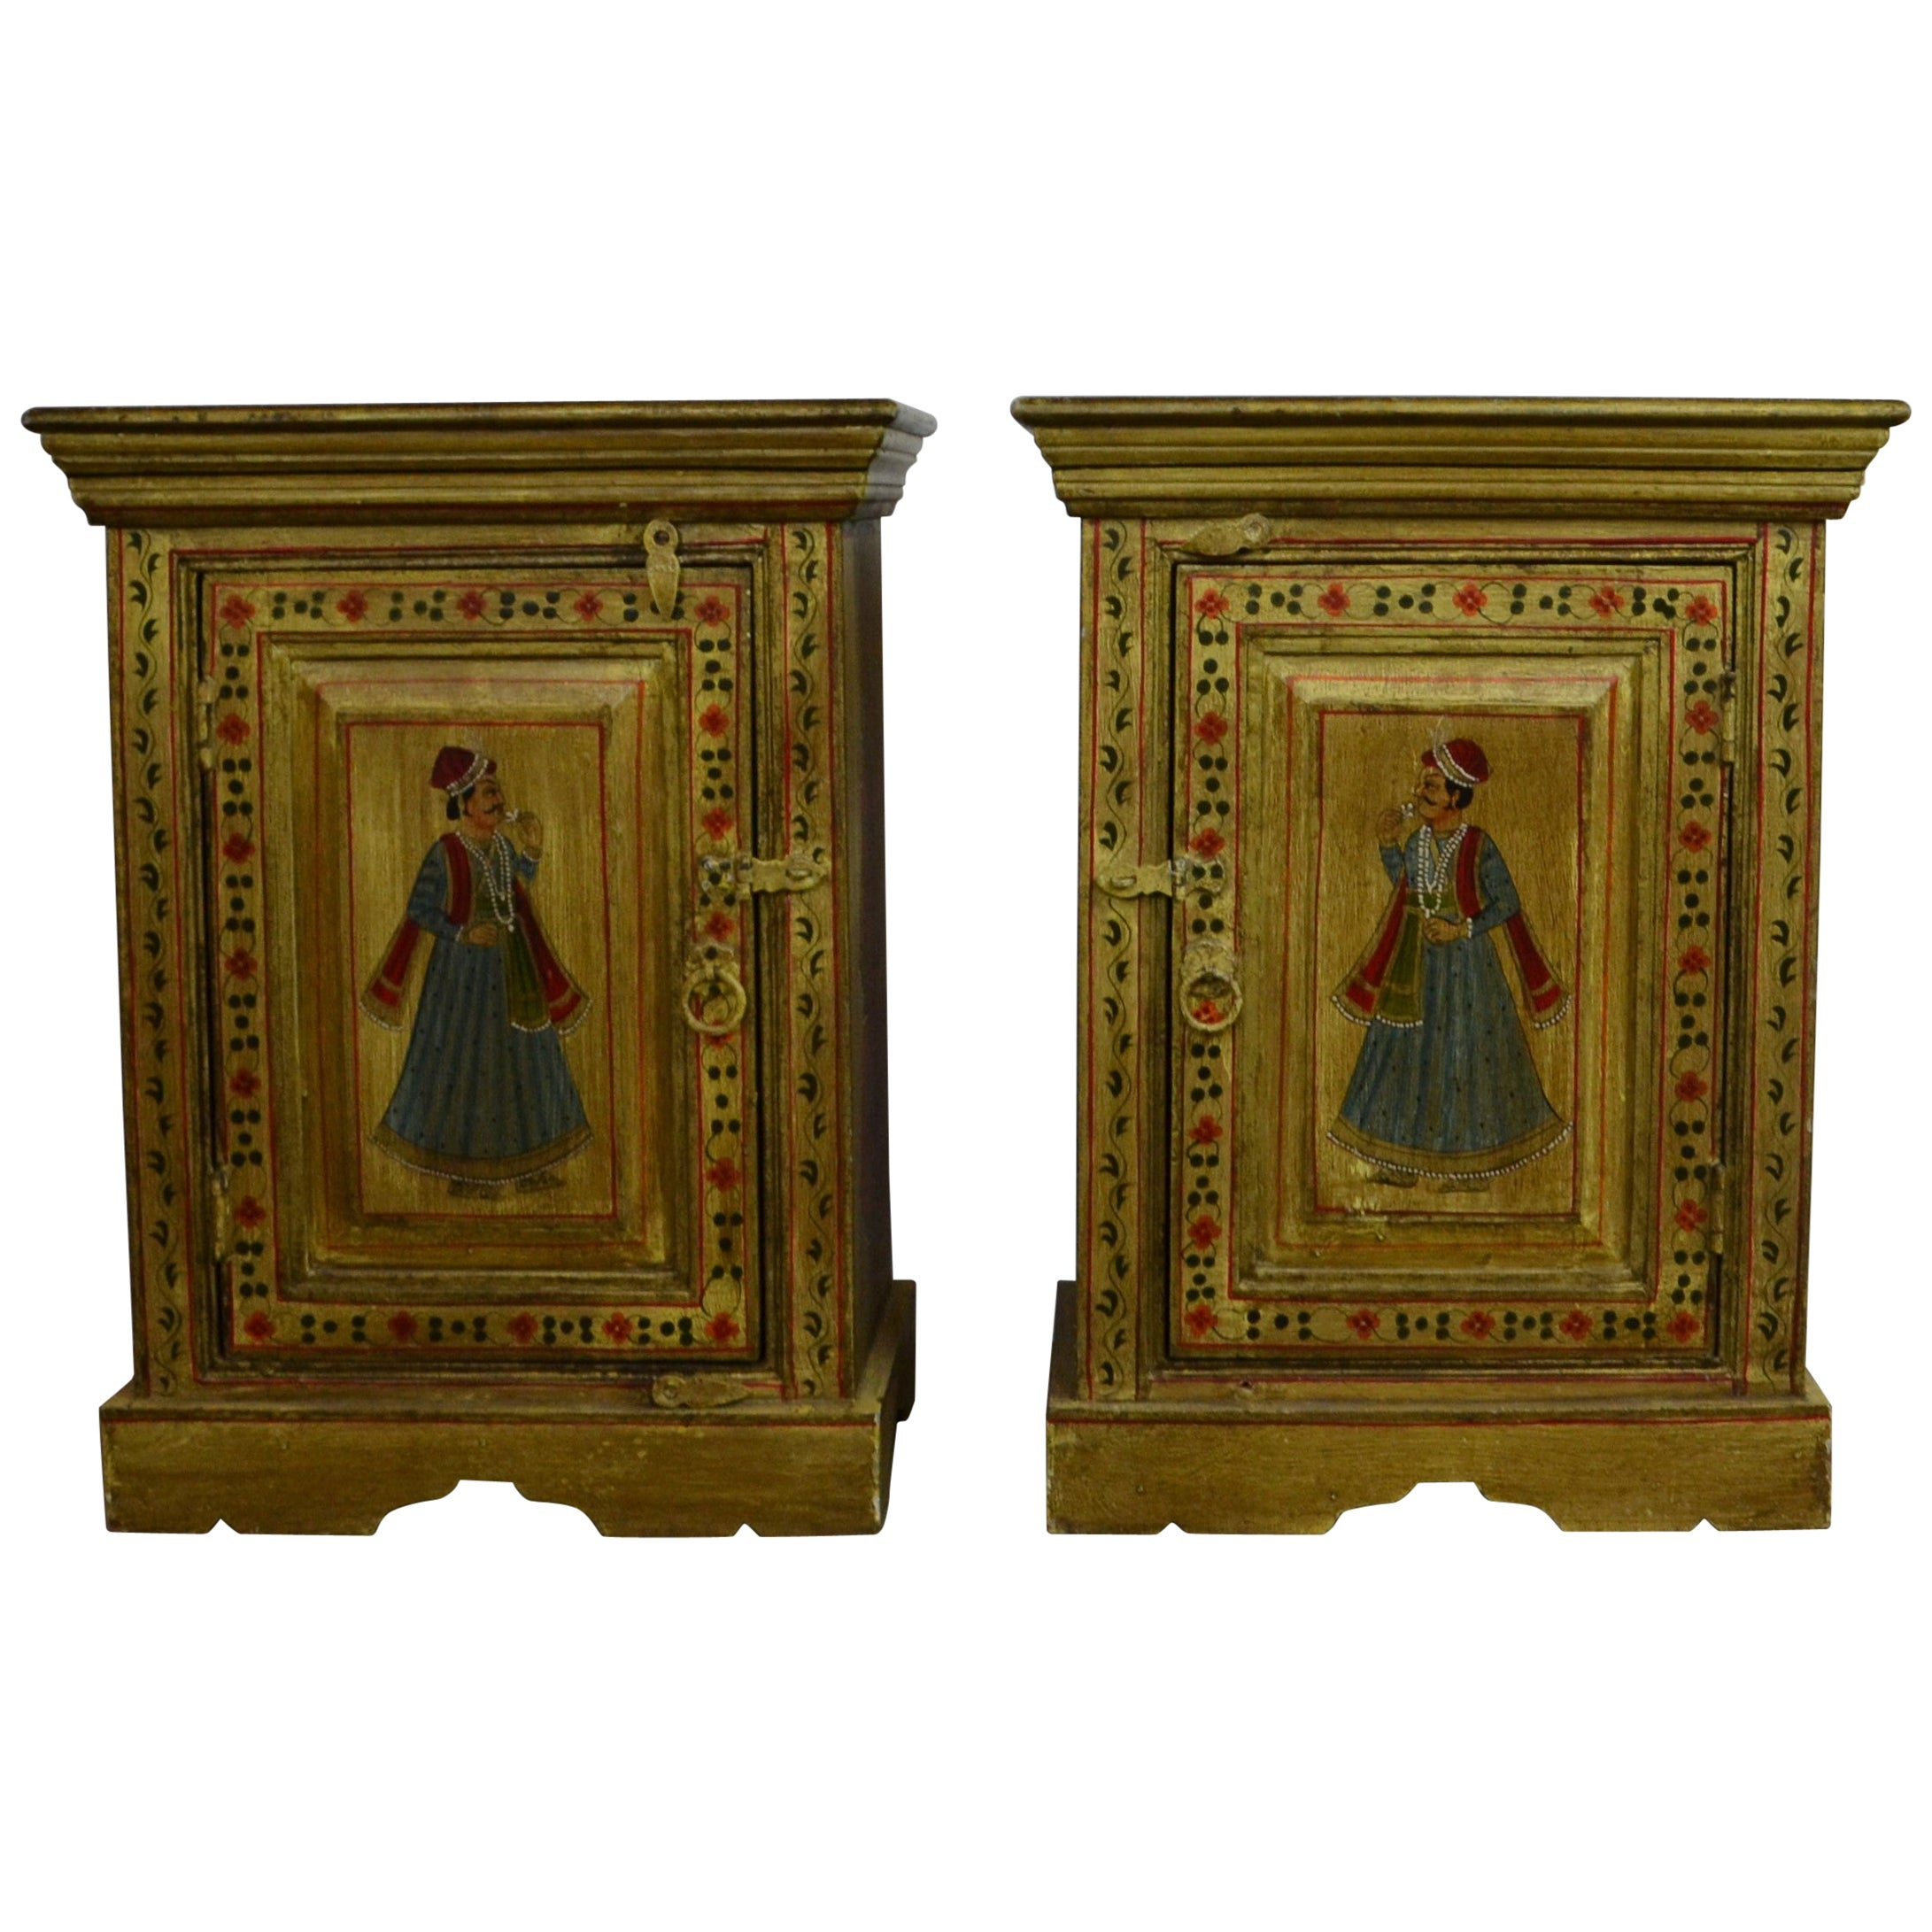 Pair of Indian Cabinet